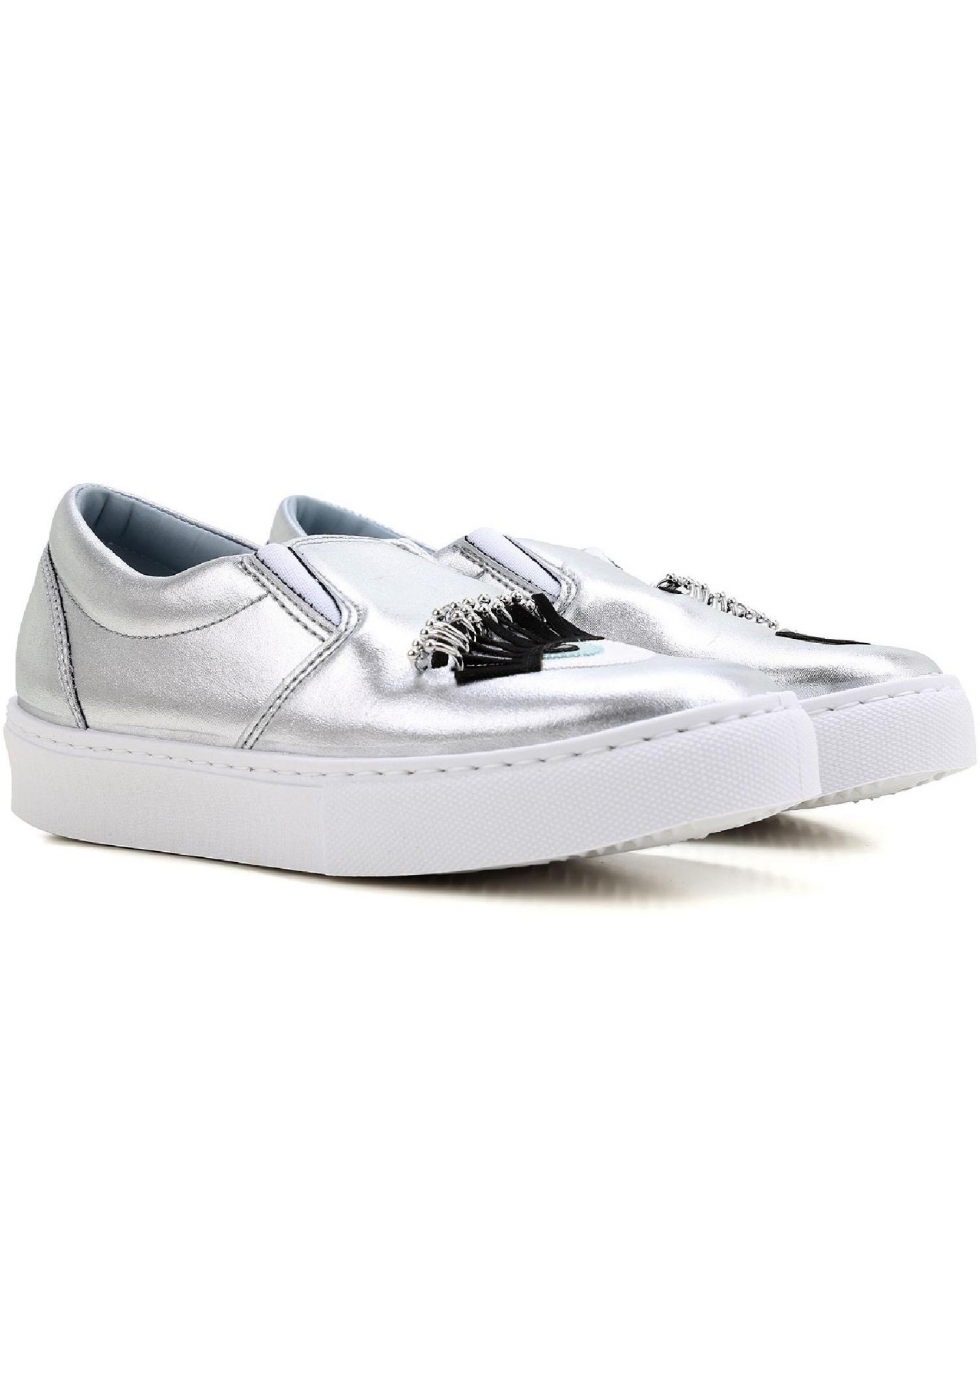 Slip on Sneakers for Women On Sale in Outlet, Silver, Leather, 2017, 4 Prada